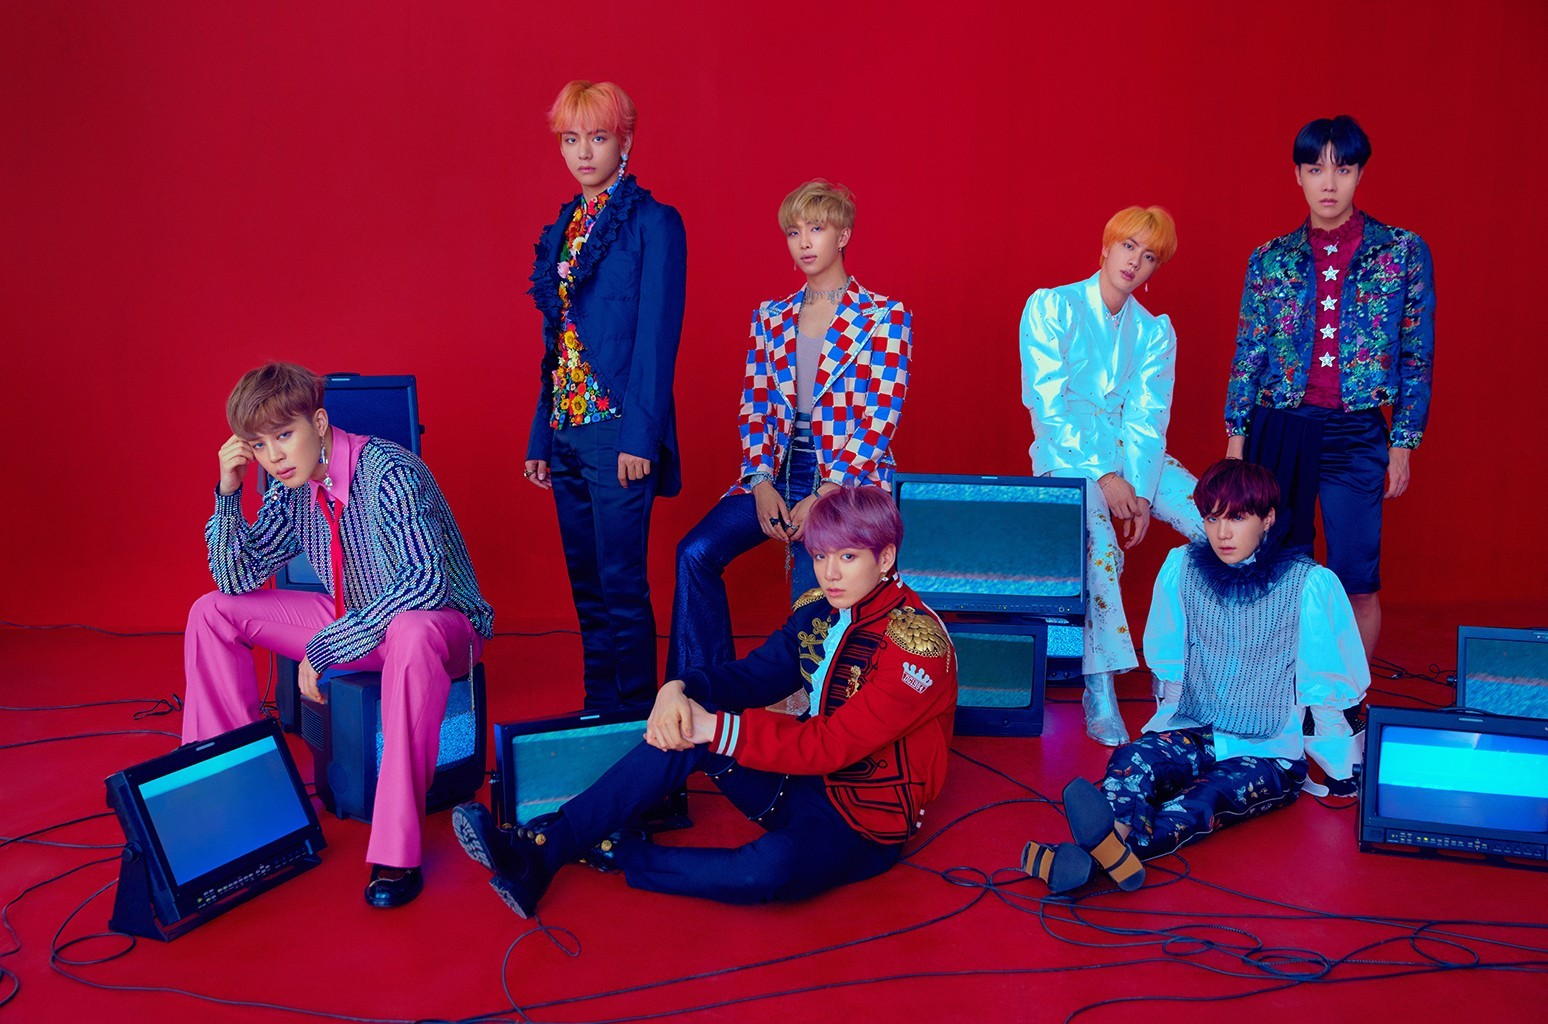 K Pop Boy Band Bts Boy With Luv Becomes Fastest Video To Hit